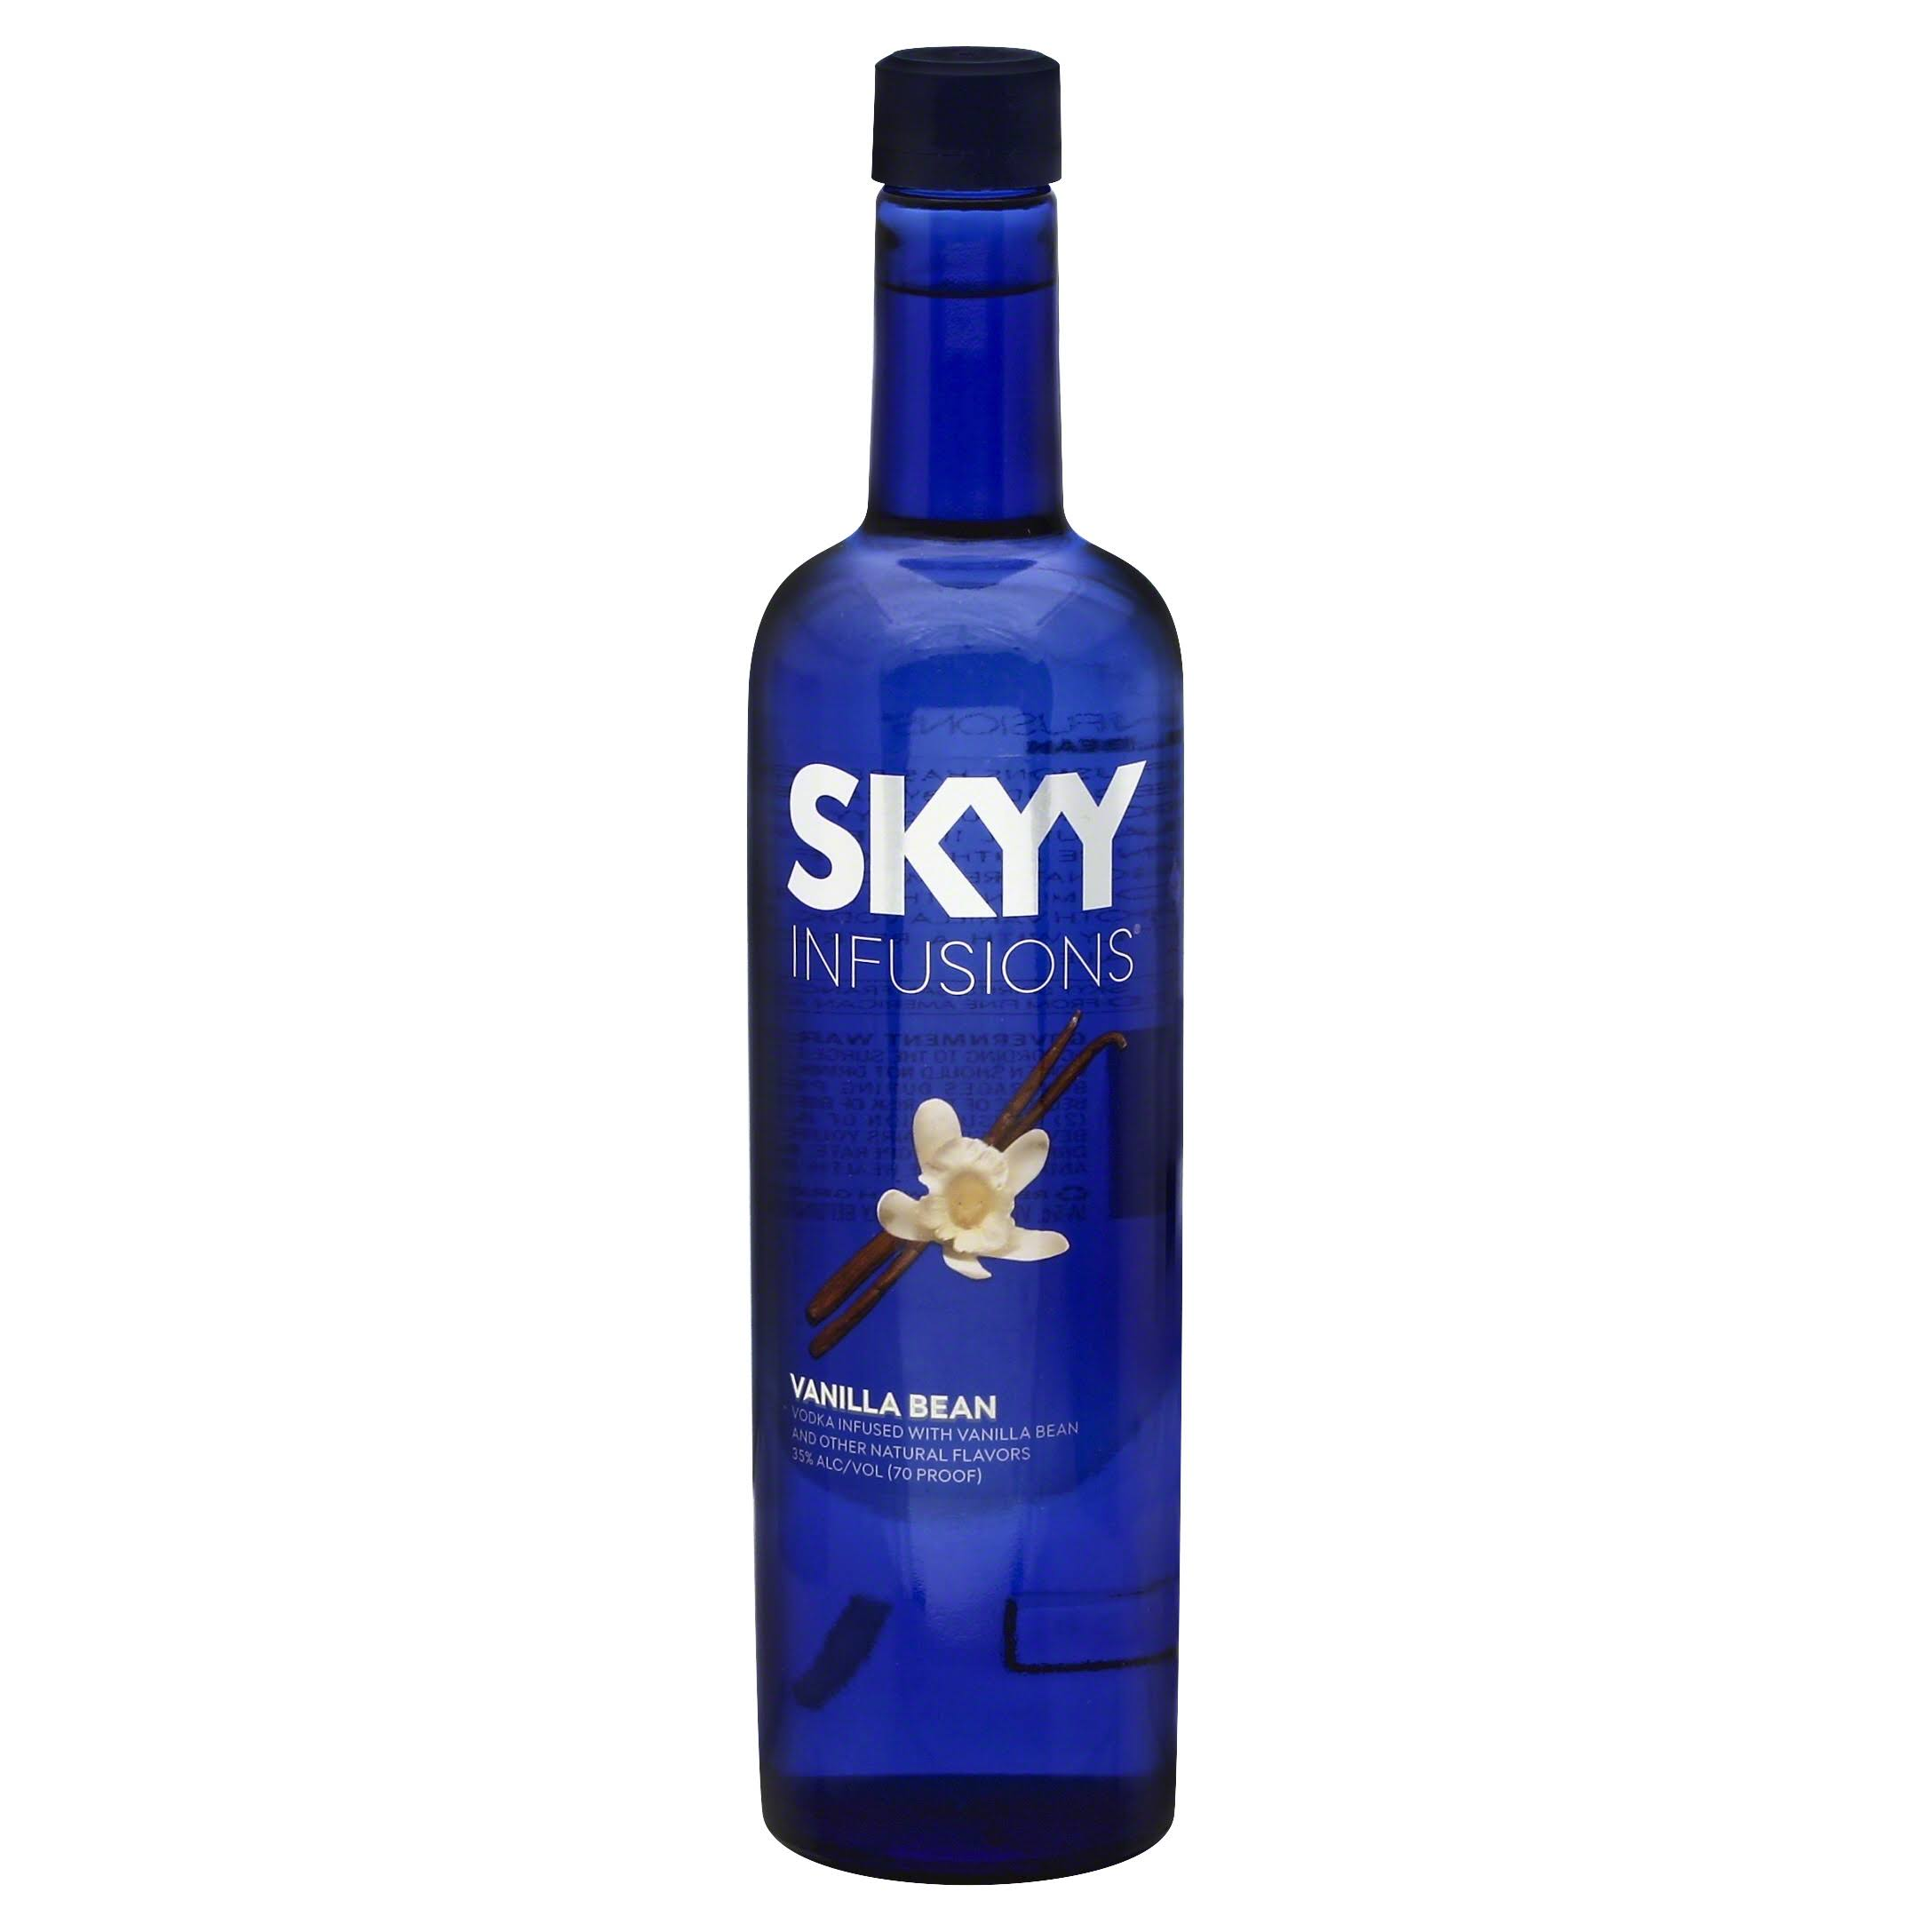 Skyy Infusions Vodka - Vanilla Bean, 750ml